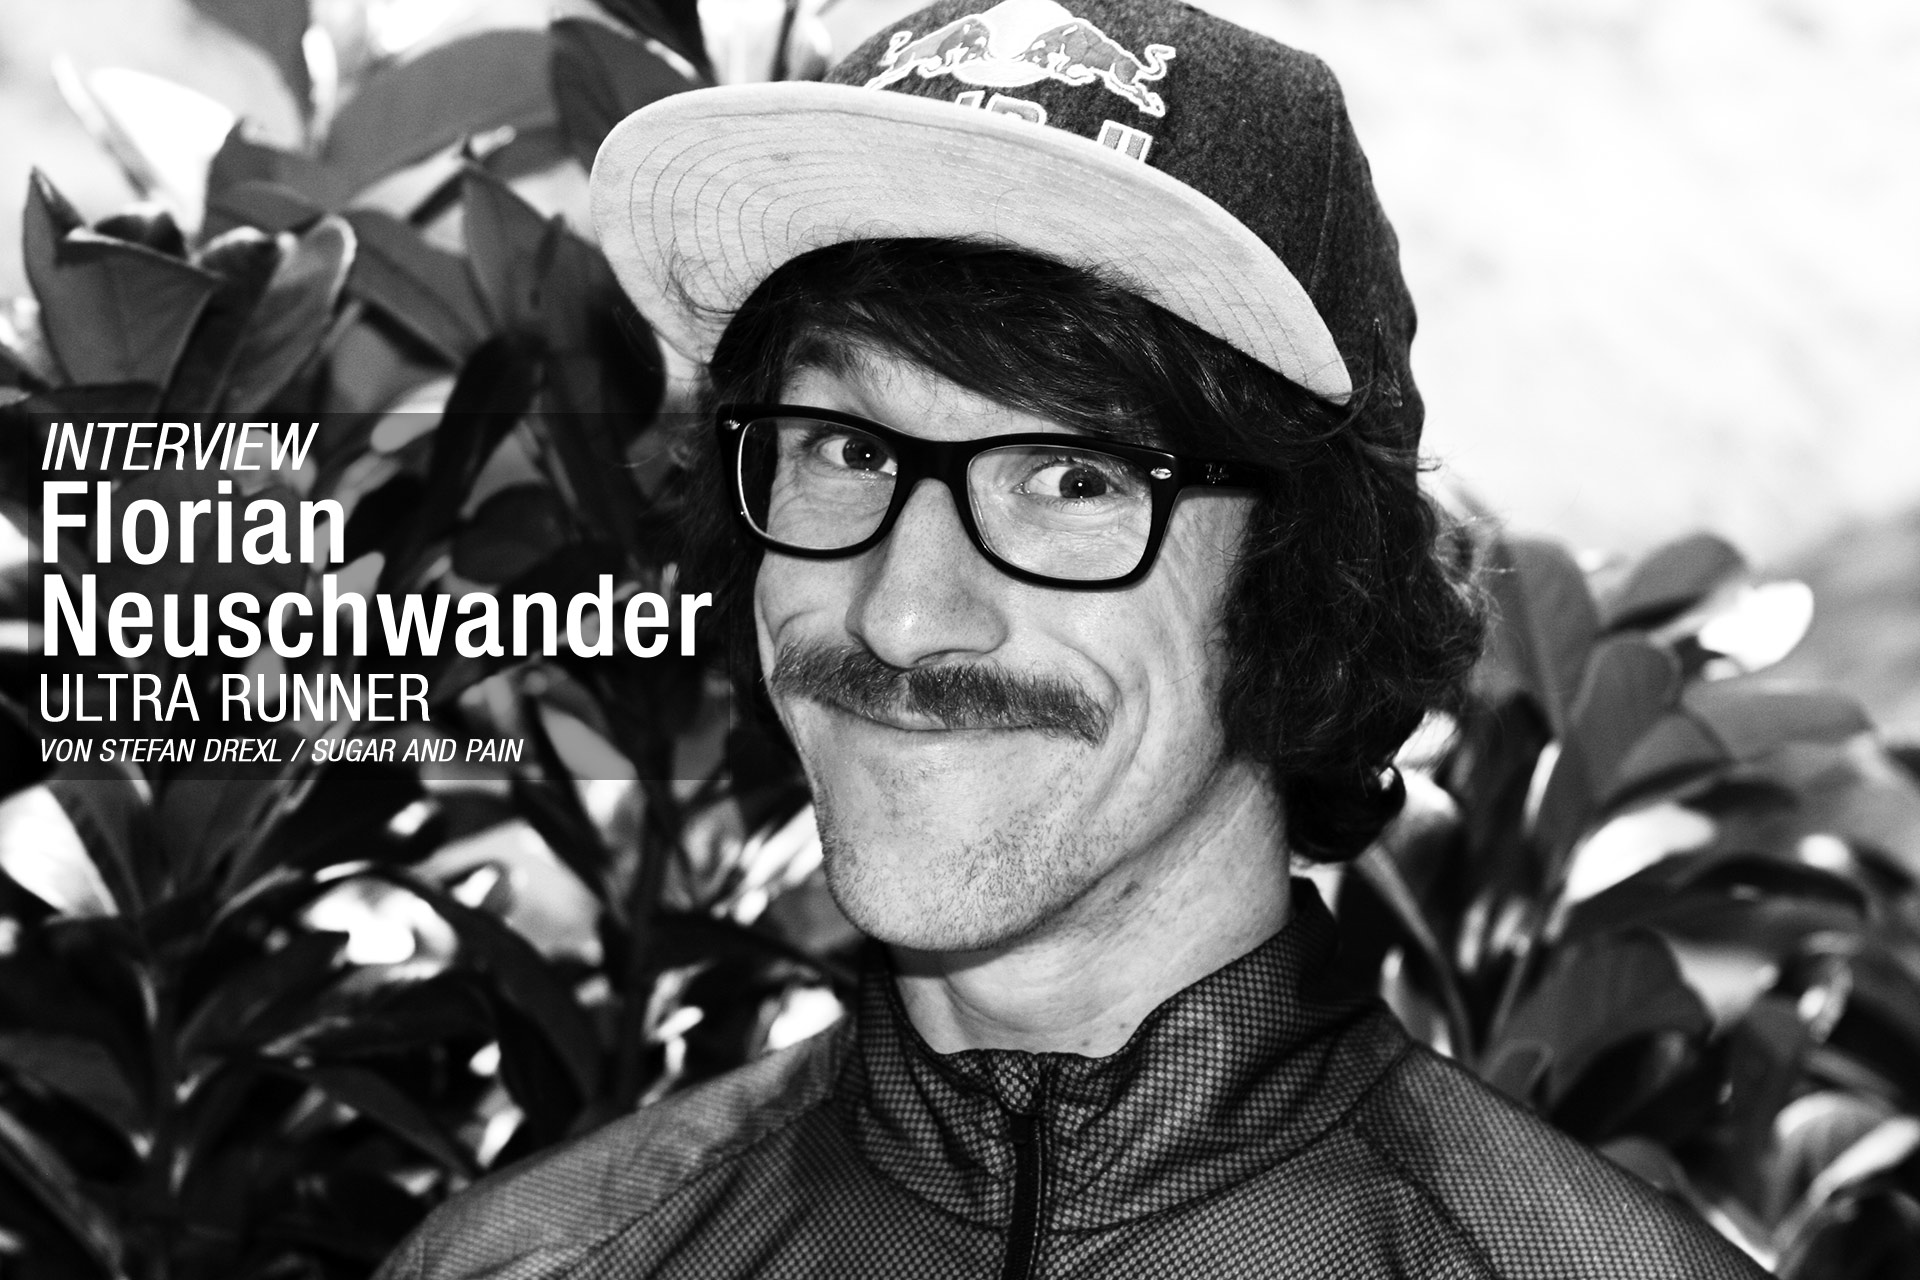 INTERVIEW Florian Neuschwander, Ultrarunner